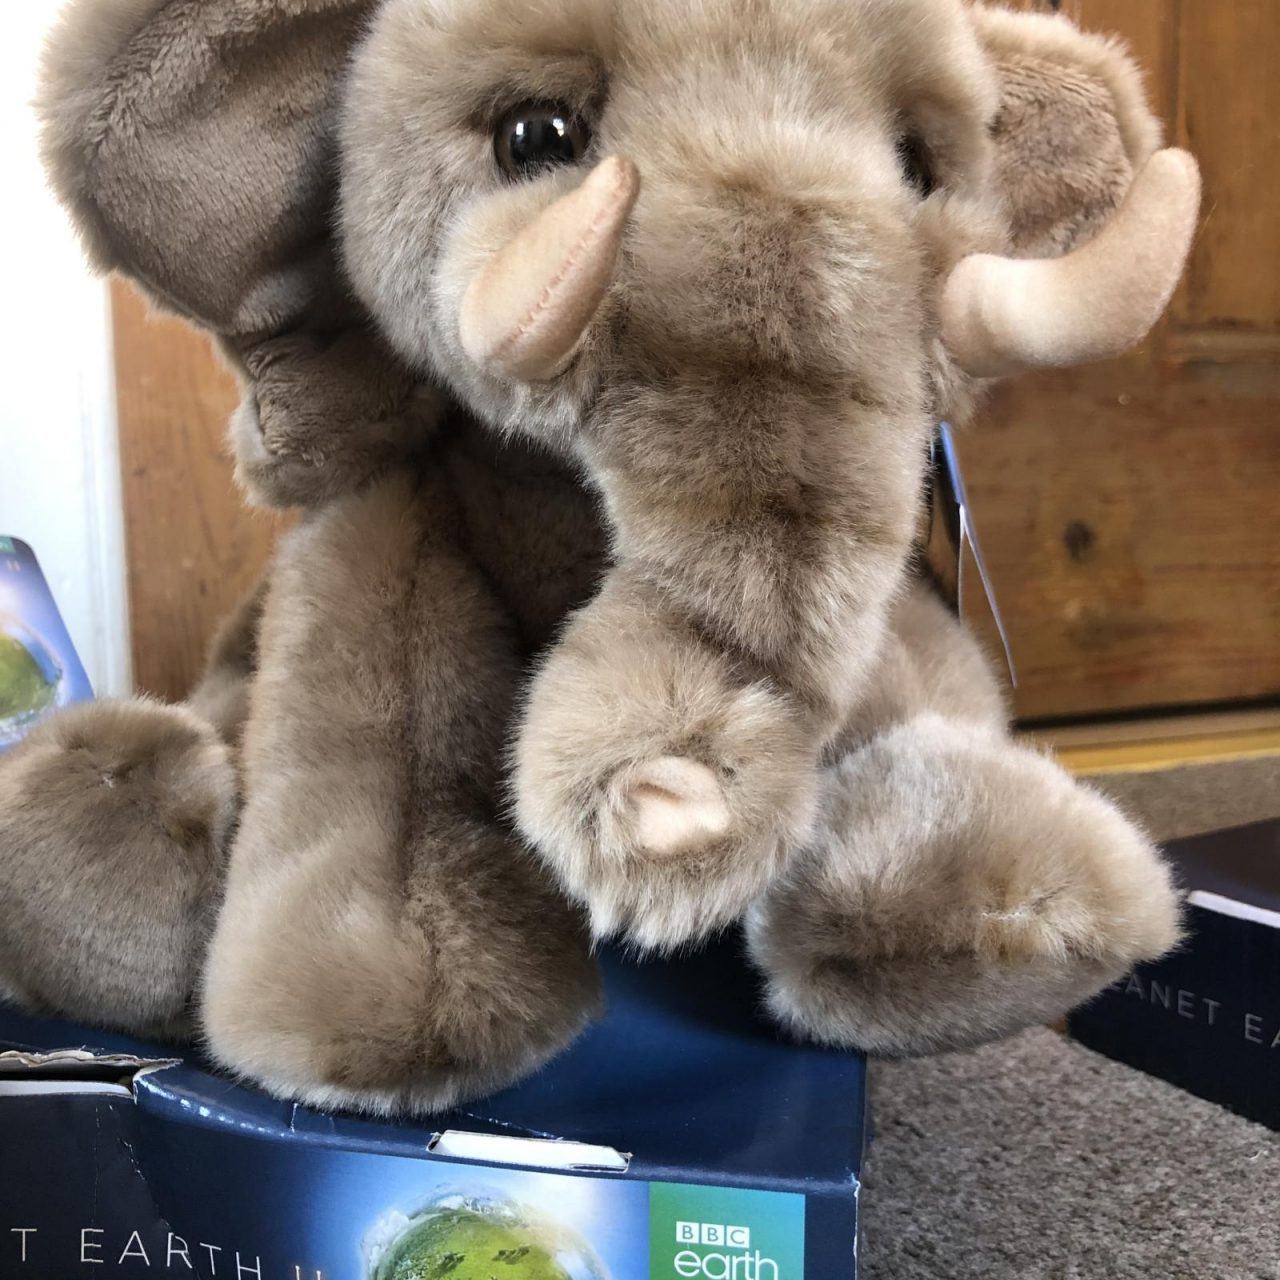 Posh Paws and Planet Earth plush review and giveaway!